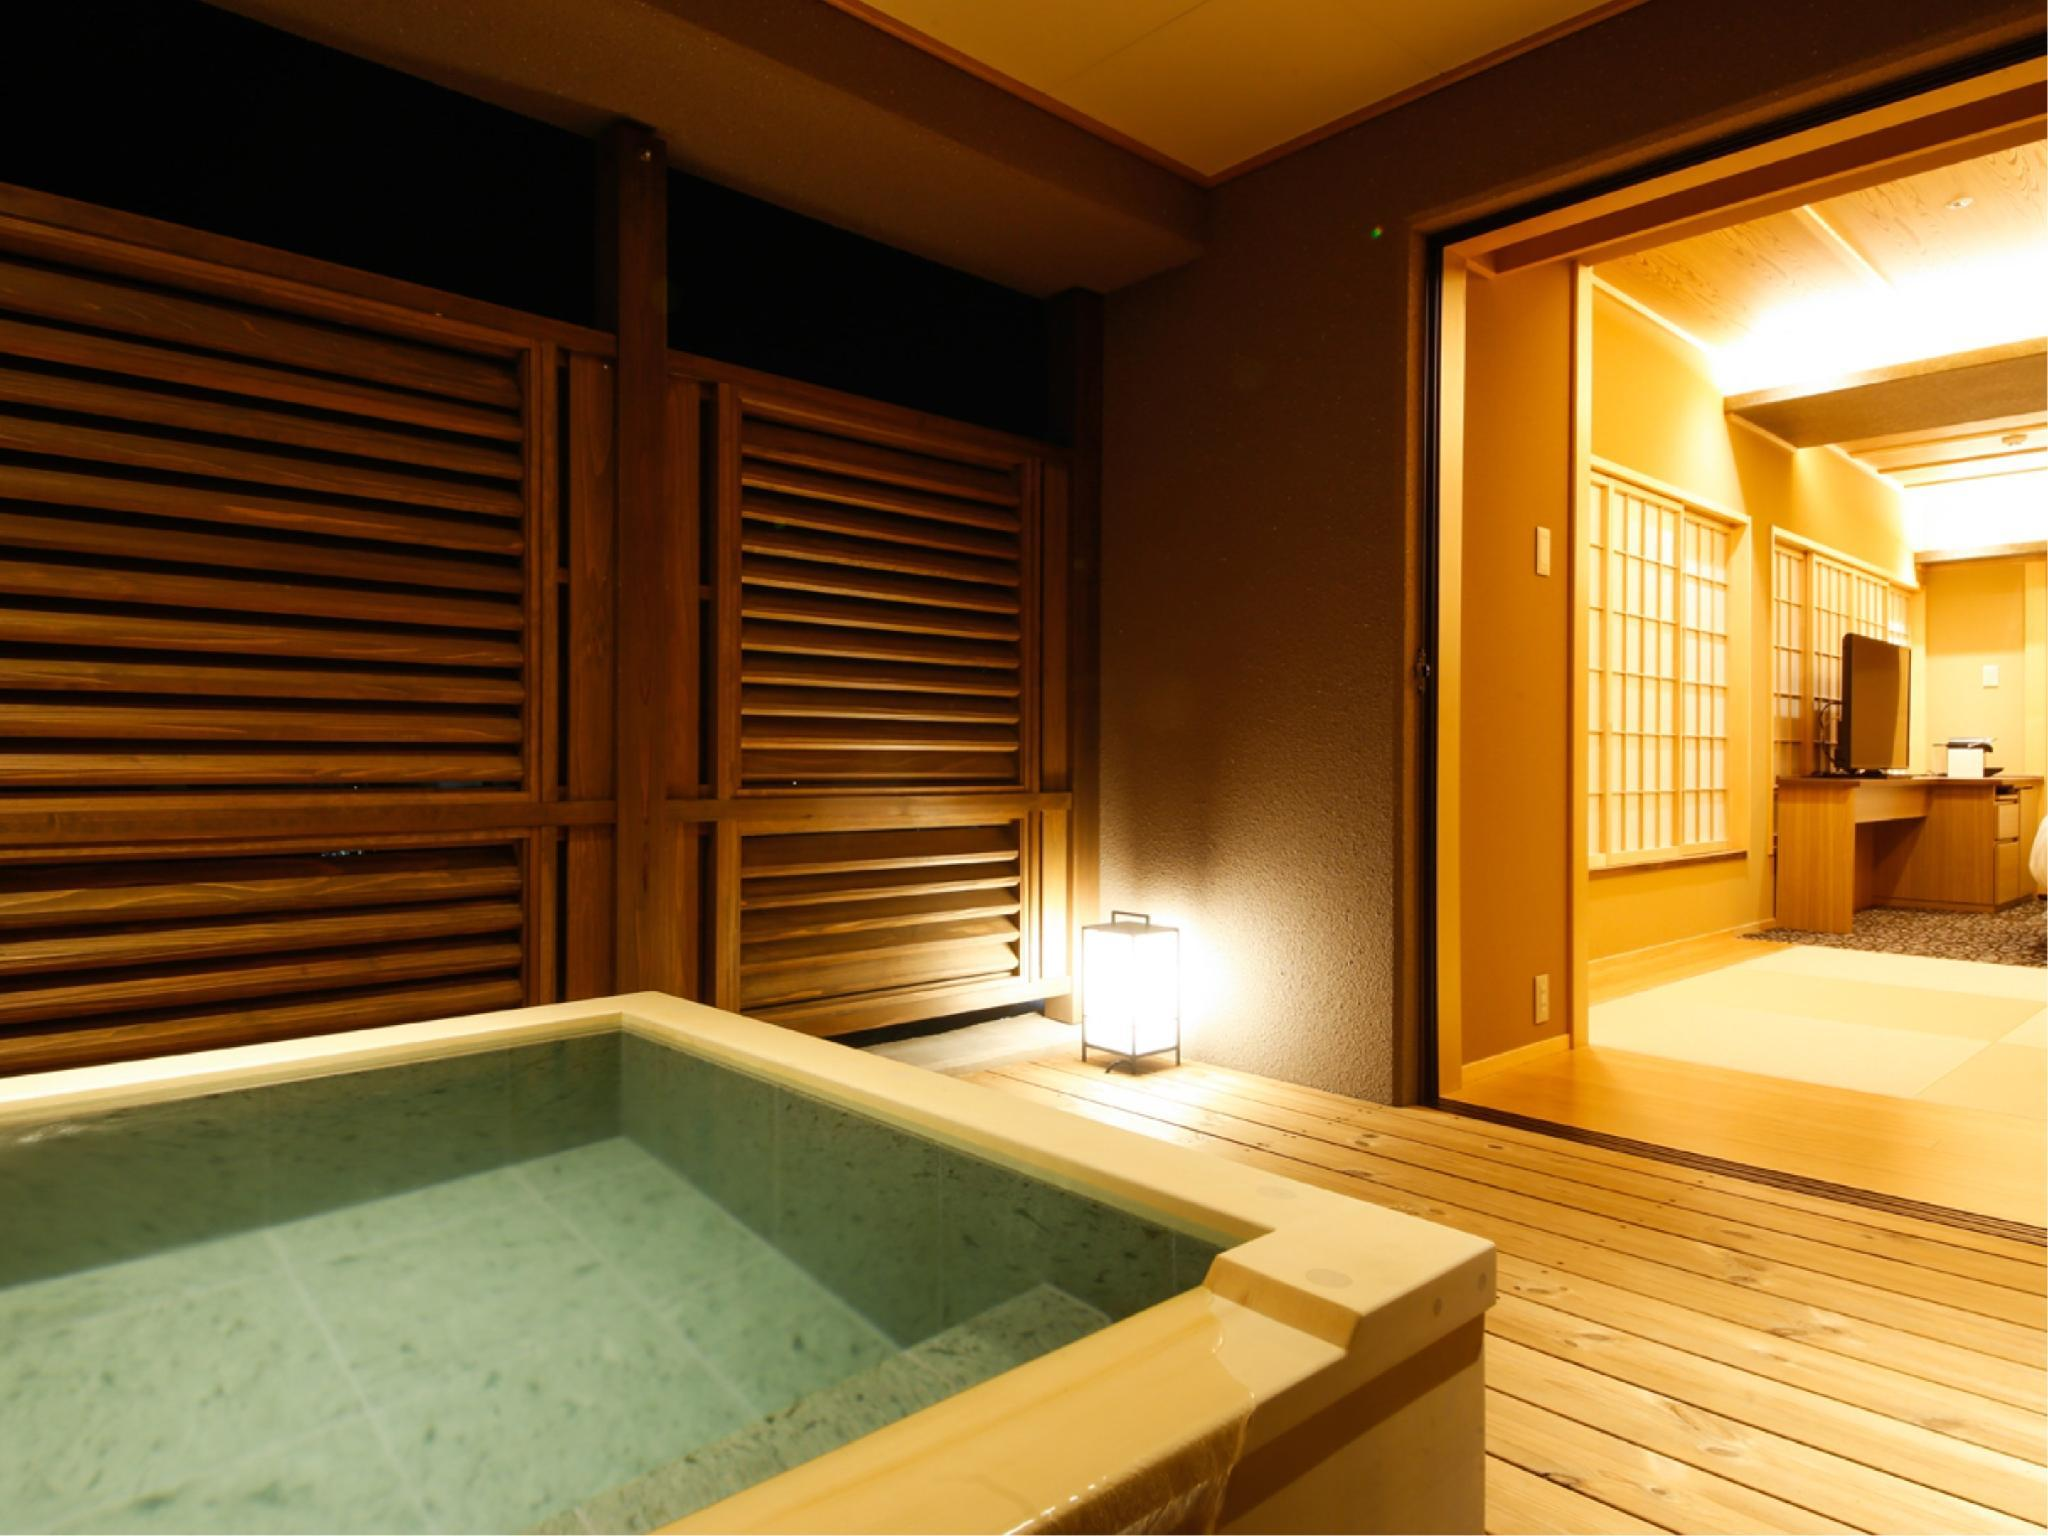 特別樓層「湯樓」 和洋式房B+露台+露天風呂 (Japanese/Western-style Room with Open-air Bath & Terrace (Type B, Special Floor Yuro))